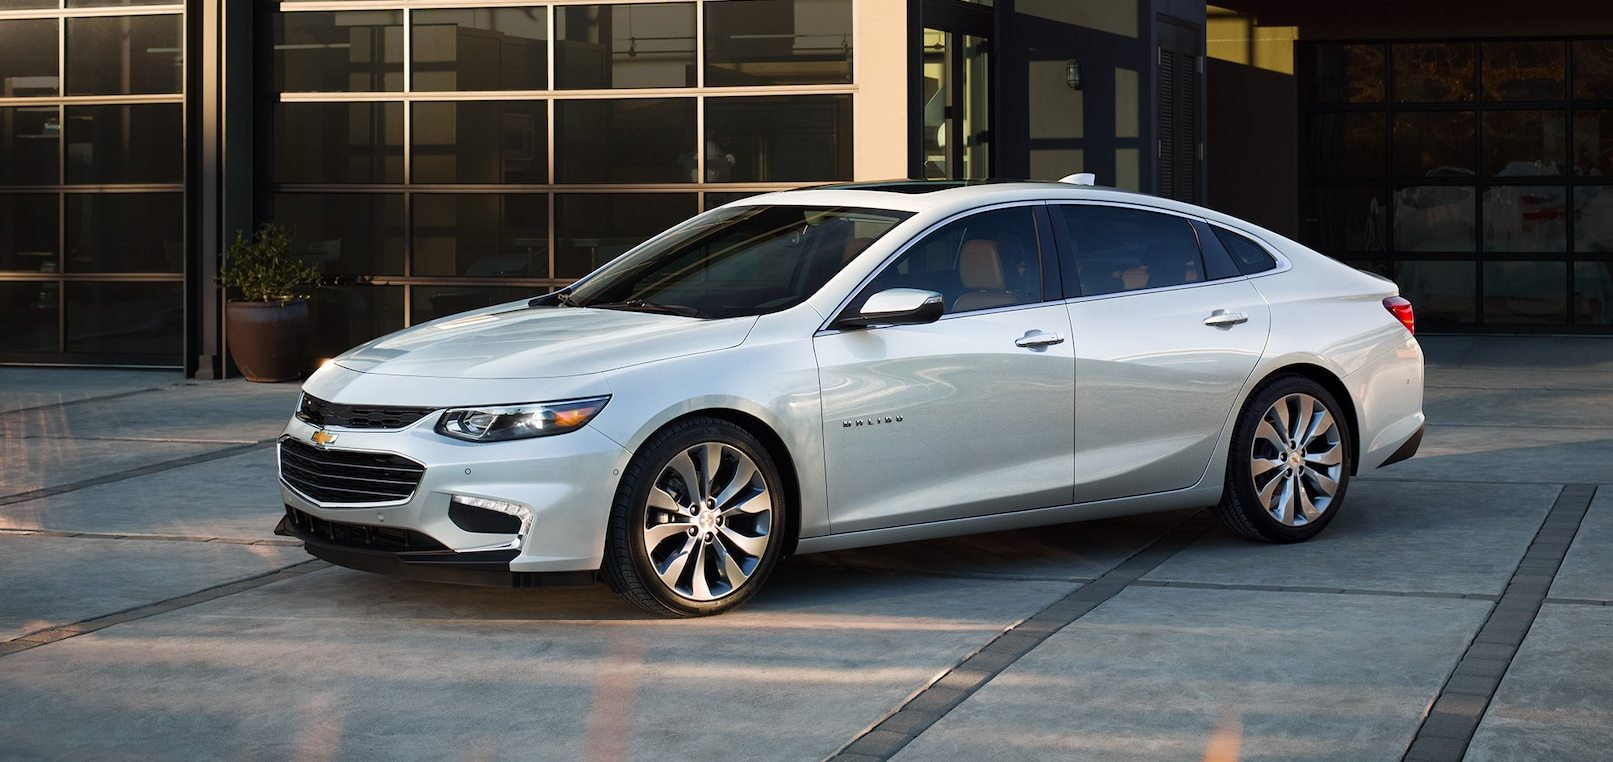 Certified Pre-Owned Chevrolet Vehicles for Sale near Naperville, IL